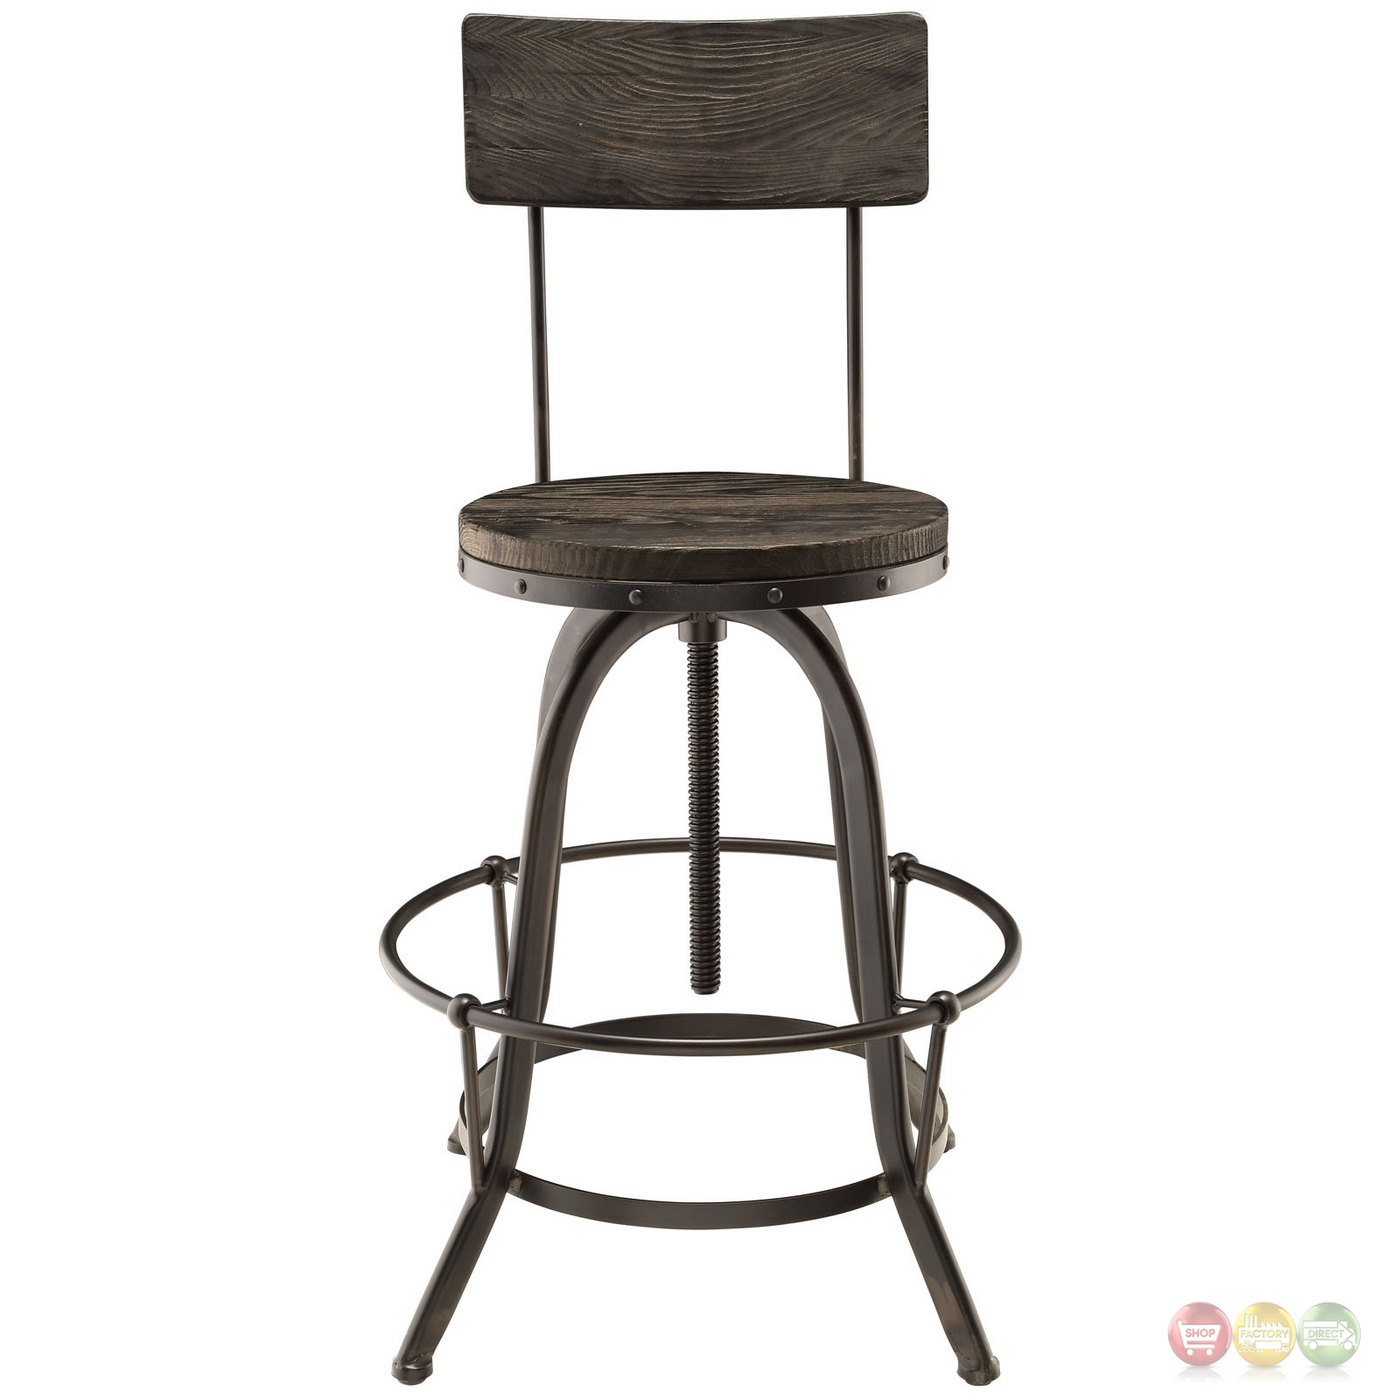 Set Of 2 Procure Industrial Bar Stool W Wood Seat Backs